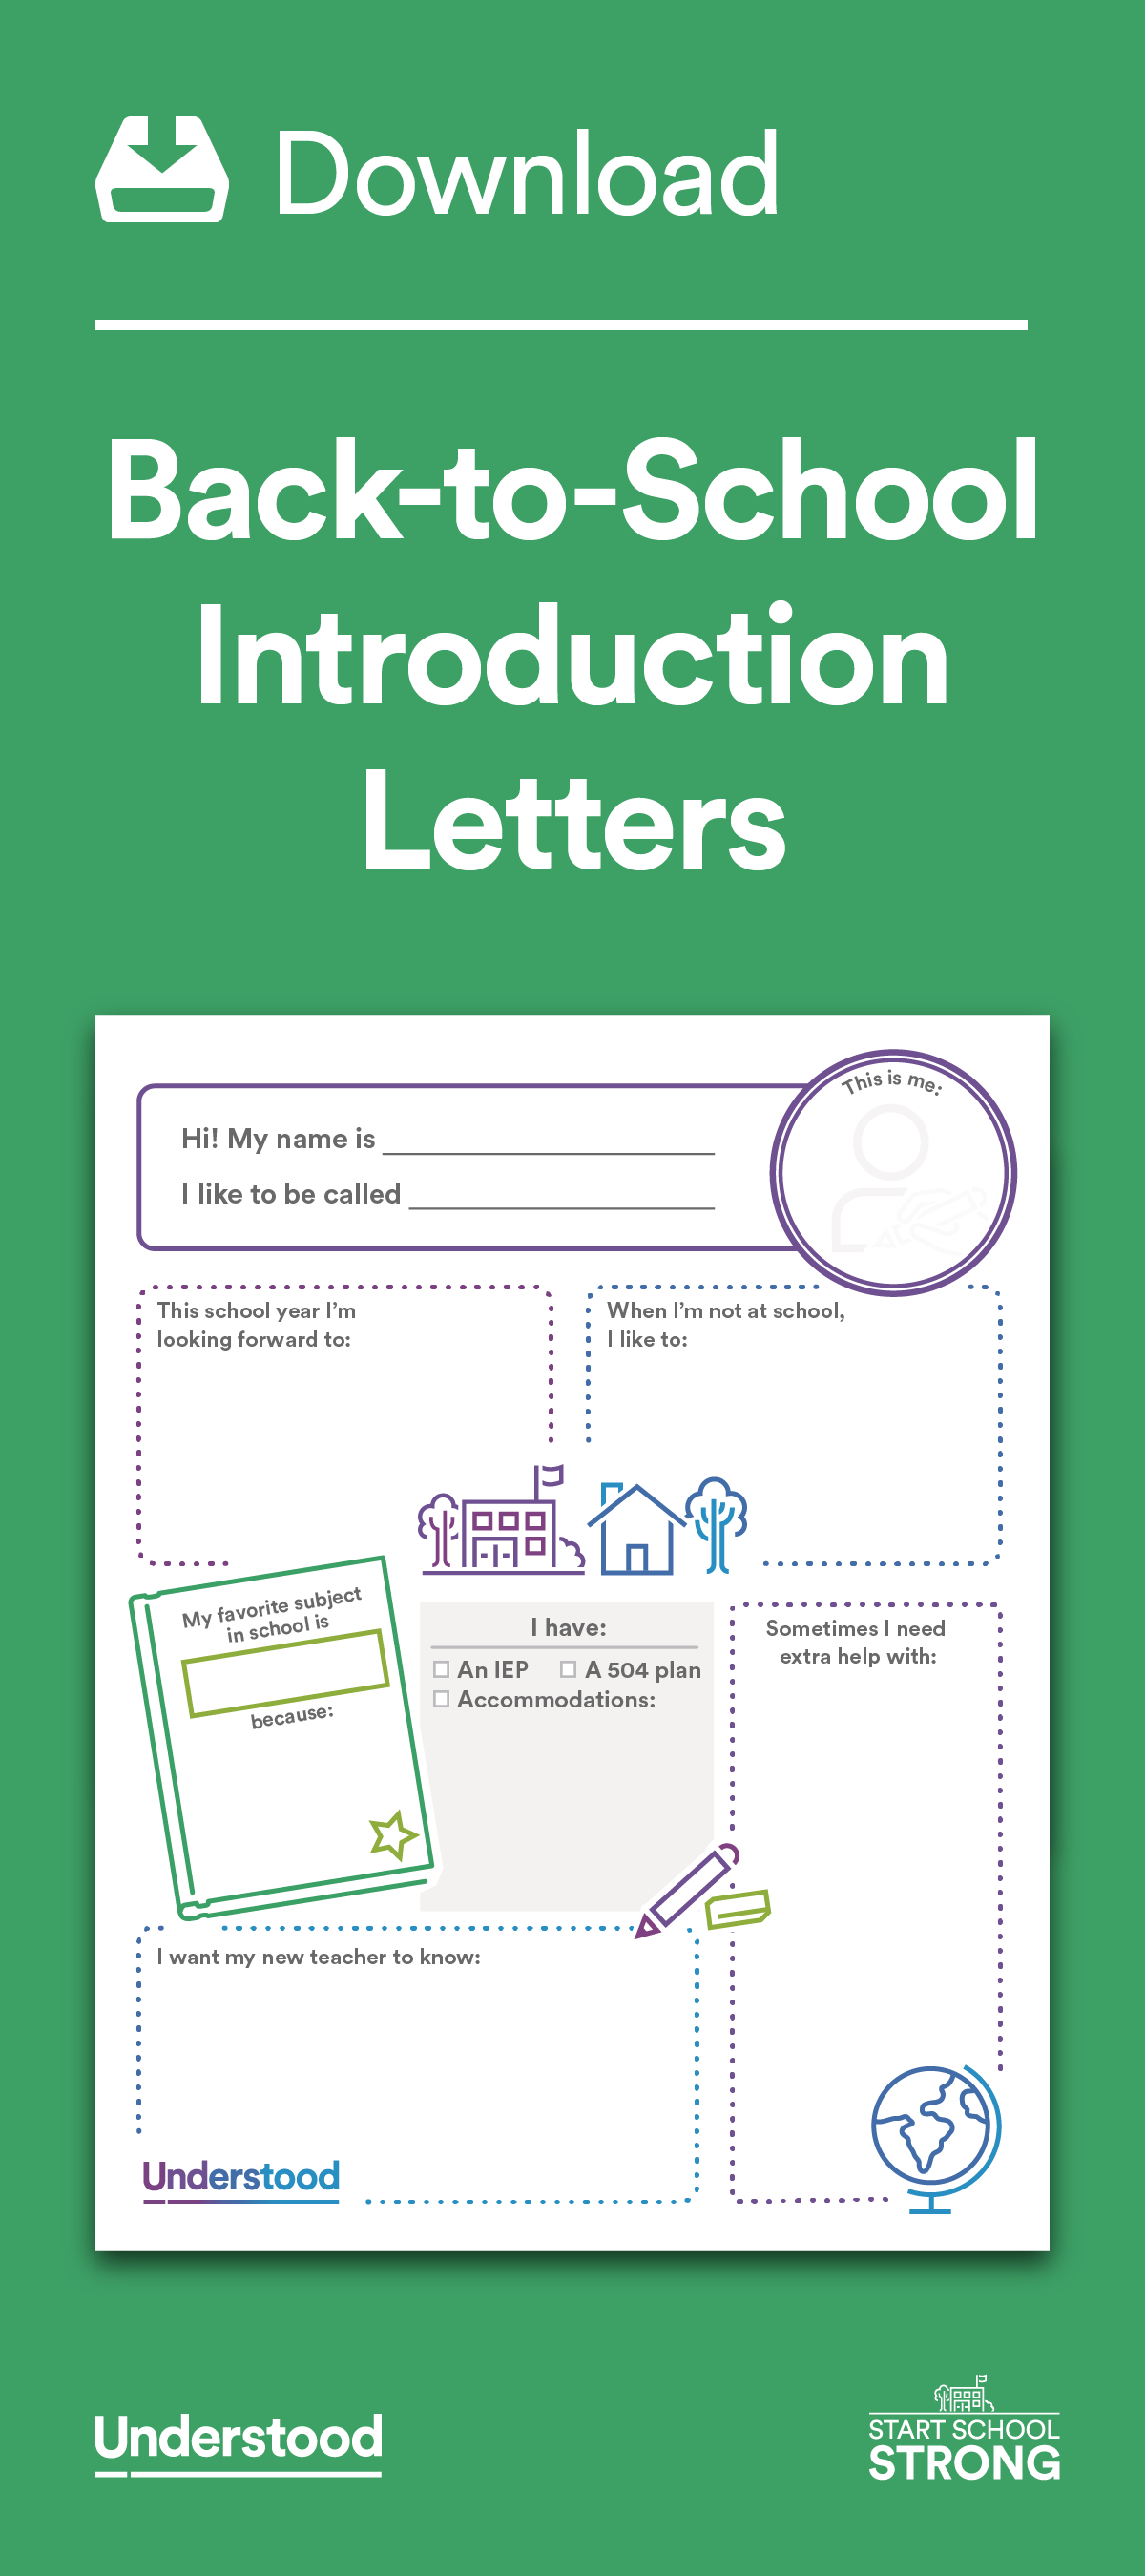 Download BackToSchool Introduction Letters  Introduction Letter